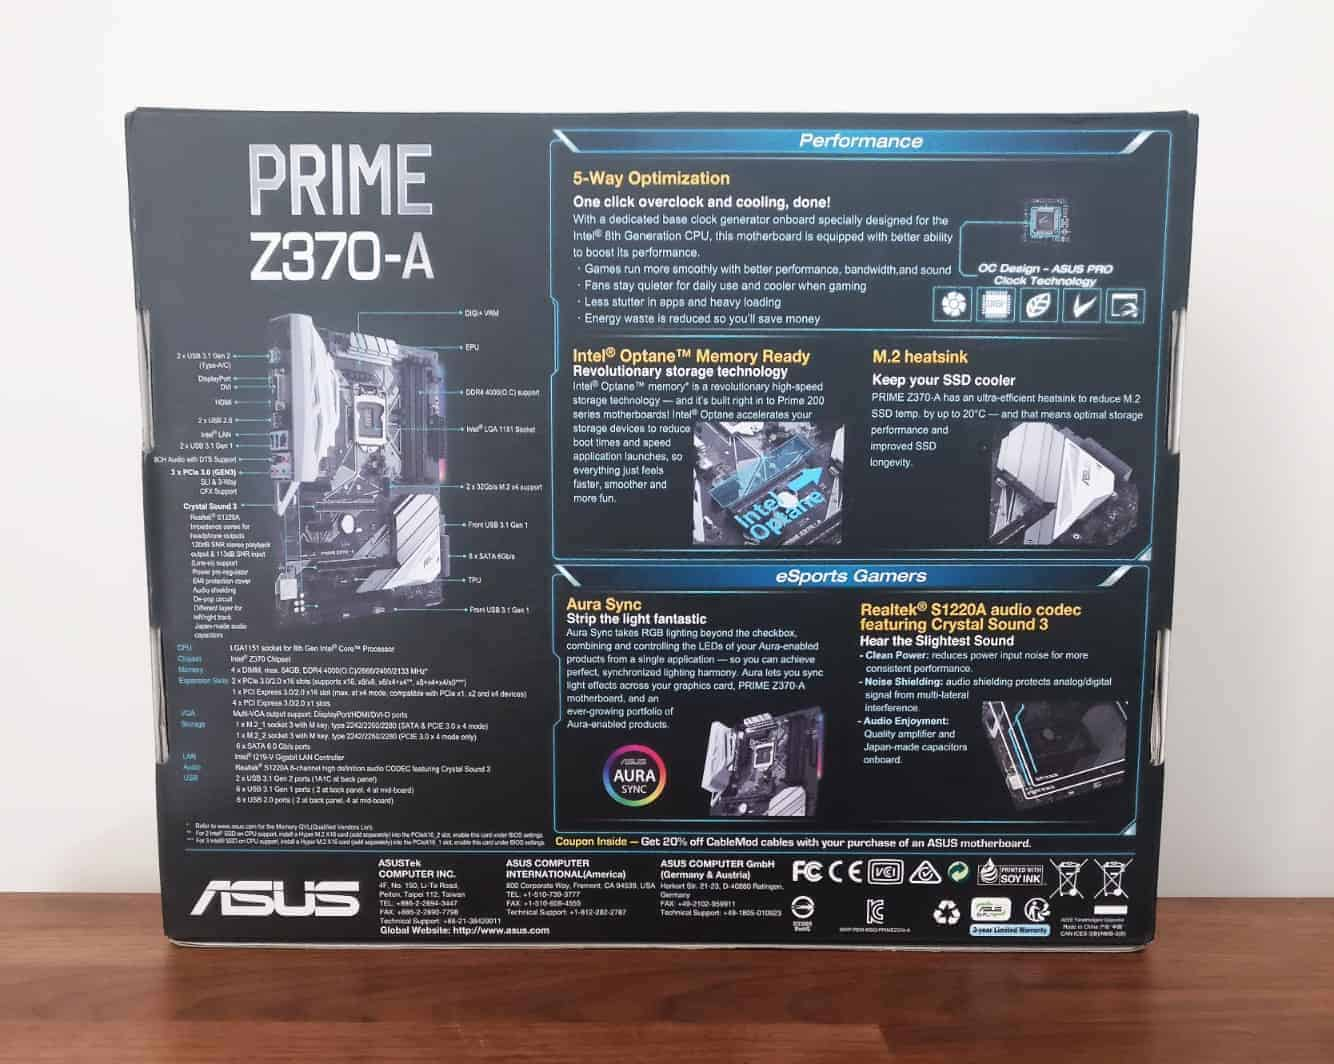 asus-prime-photos25 ASUS Prime Z370-A Motherboard Review